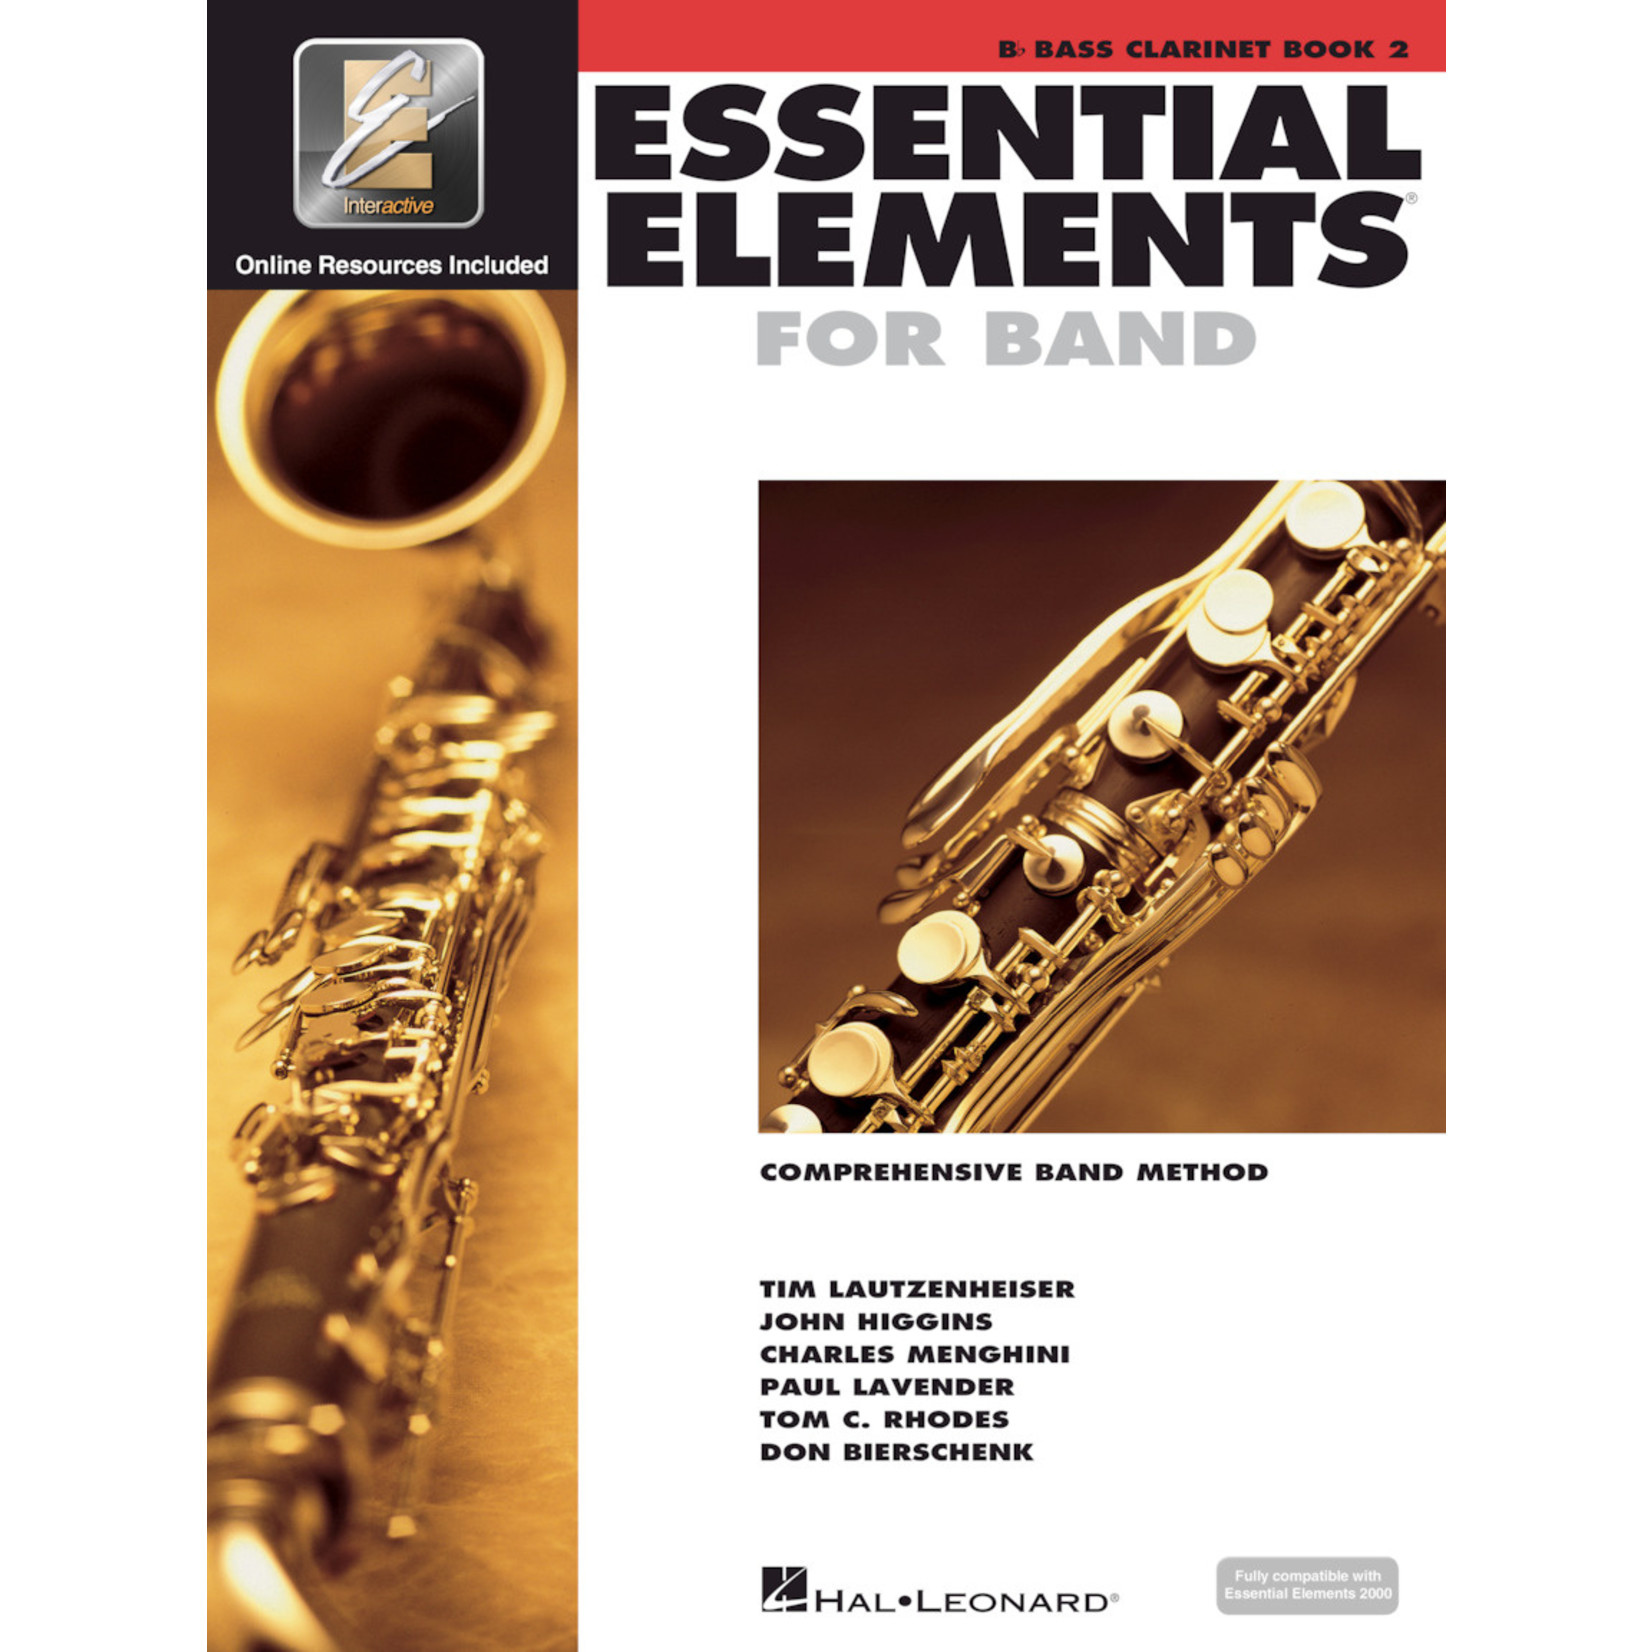 Hal Leonard Essential Elements for Band Bass Clarinet Book 2